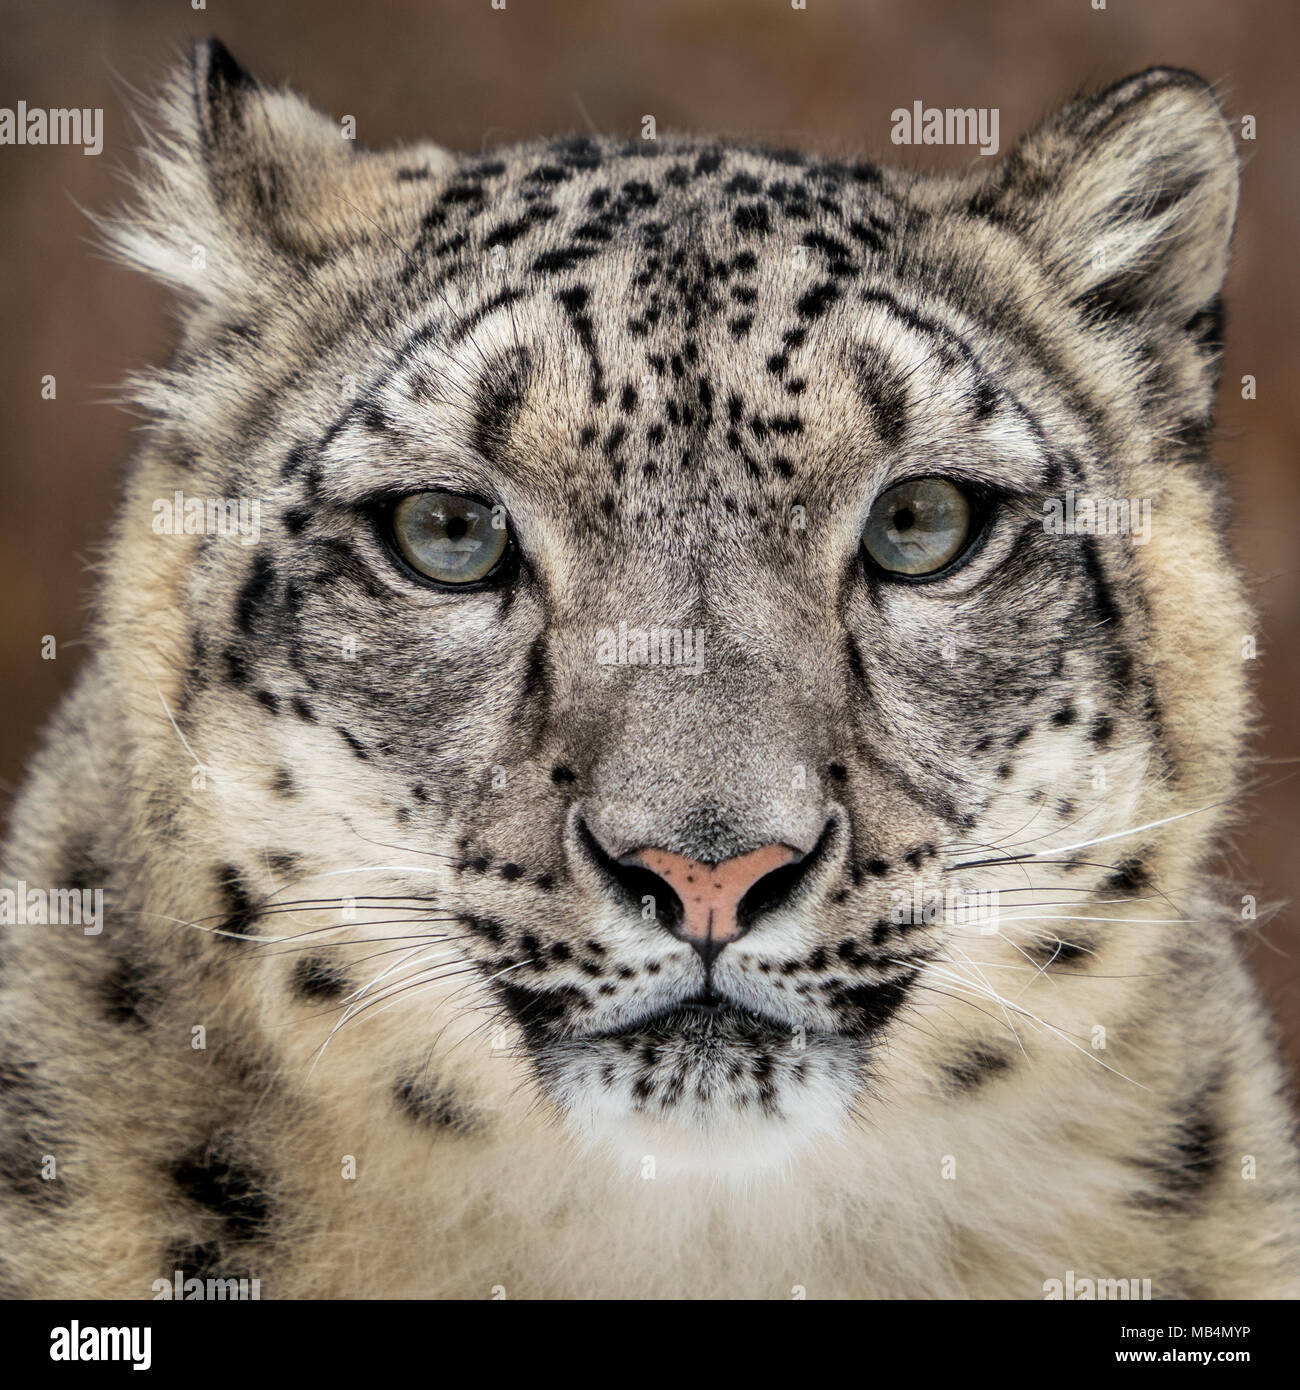 Frontal Portrait of Snow Leopard Against Coloful Background - Stock Image